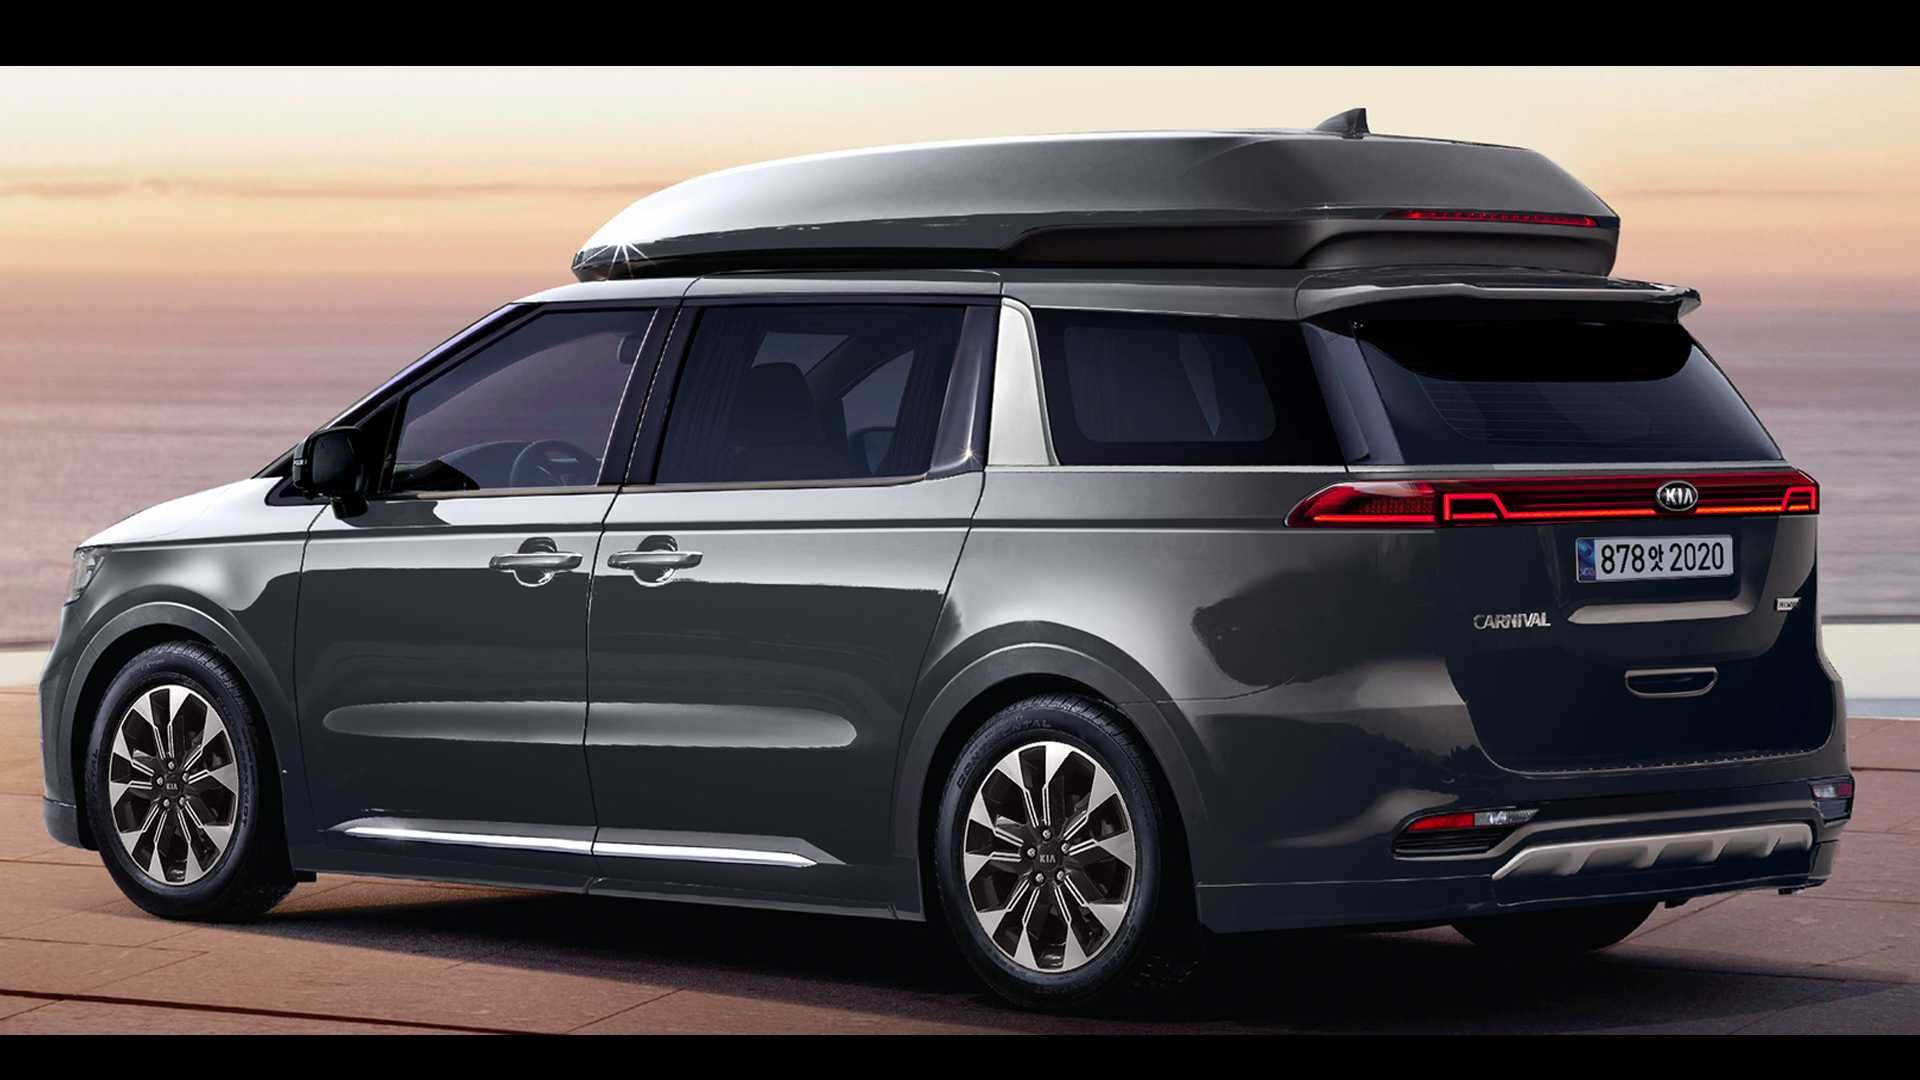 2021 kia sedona renderings preview an edgy minivan